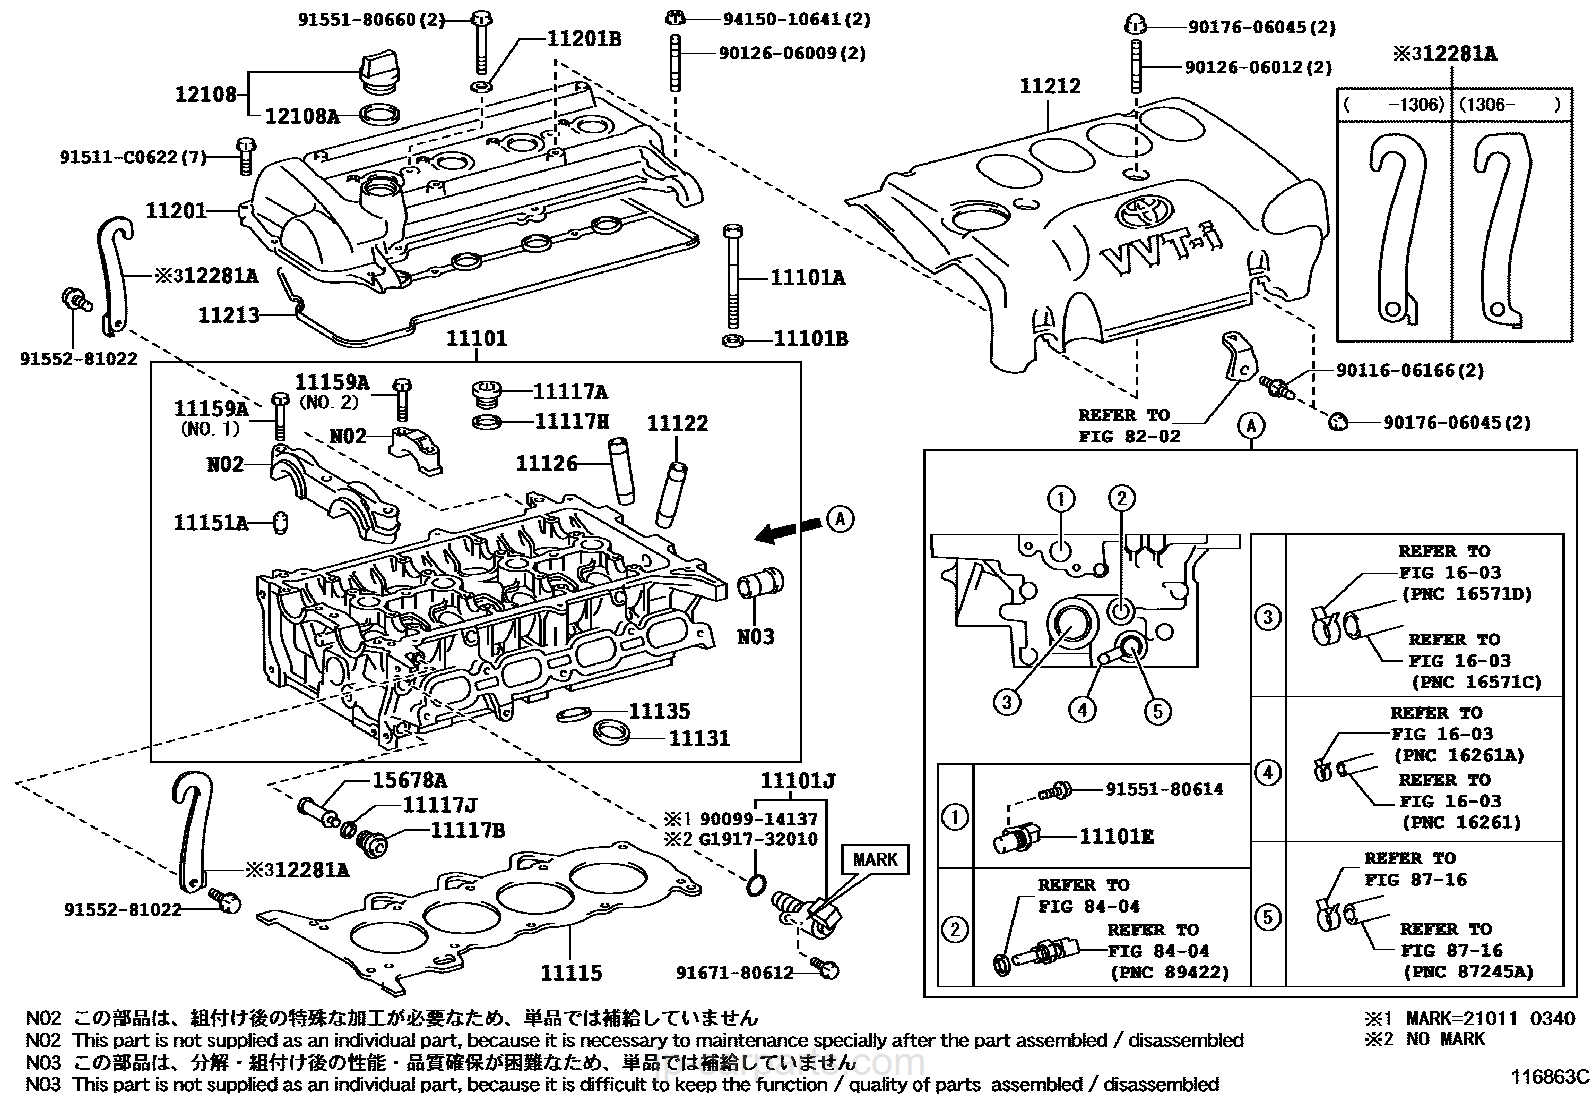 2004 toyota echo wiring diagram 2001 toyota solara wiring diagram toyota yaris engine diagram besides 2008 wiring on 2004 toyota echo wiring diagram